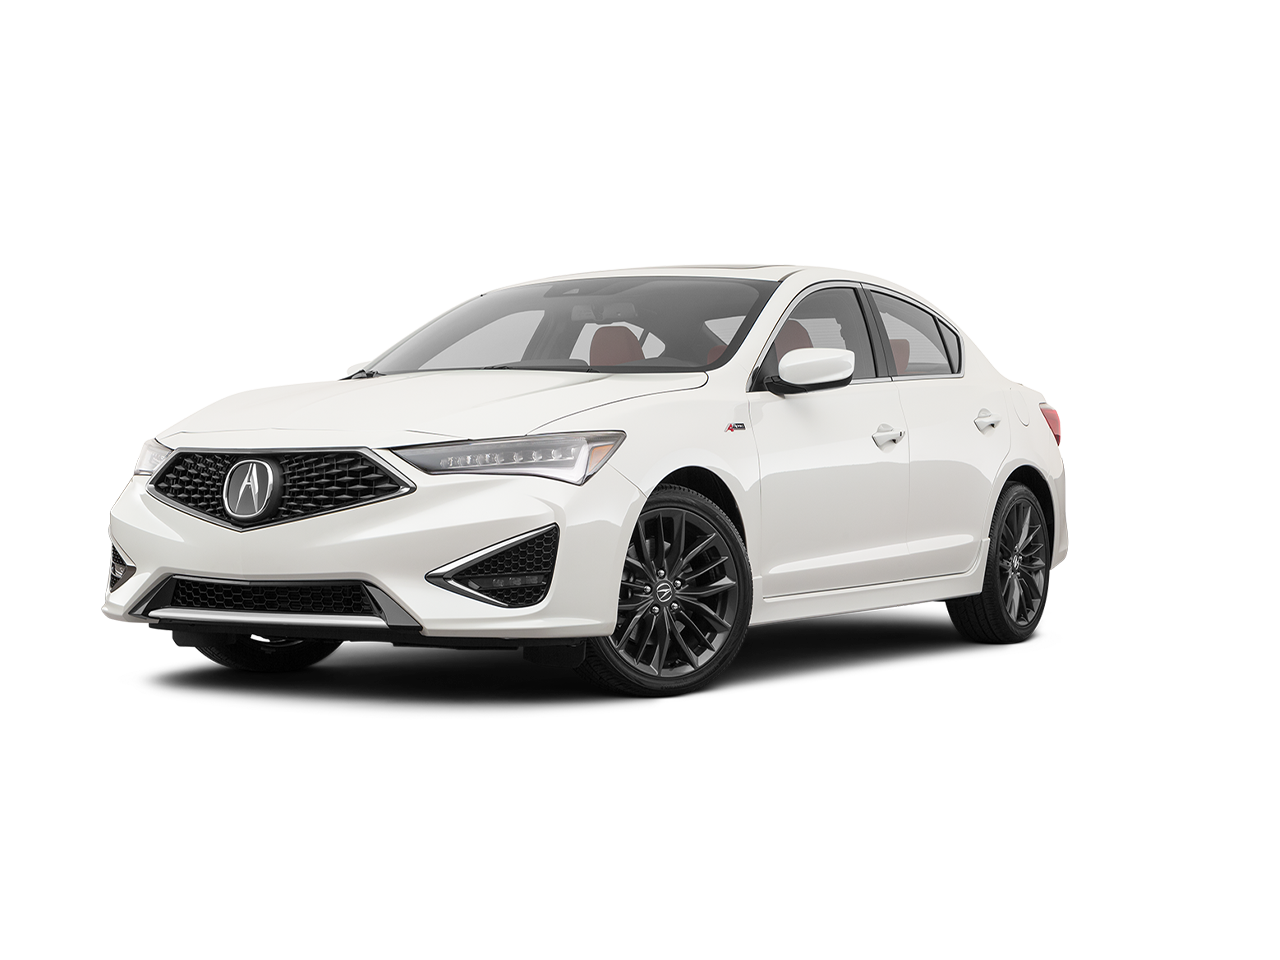 2019 ILX Premium and A-SPEC Packages